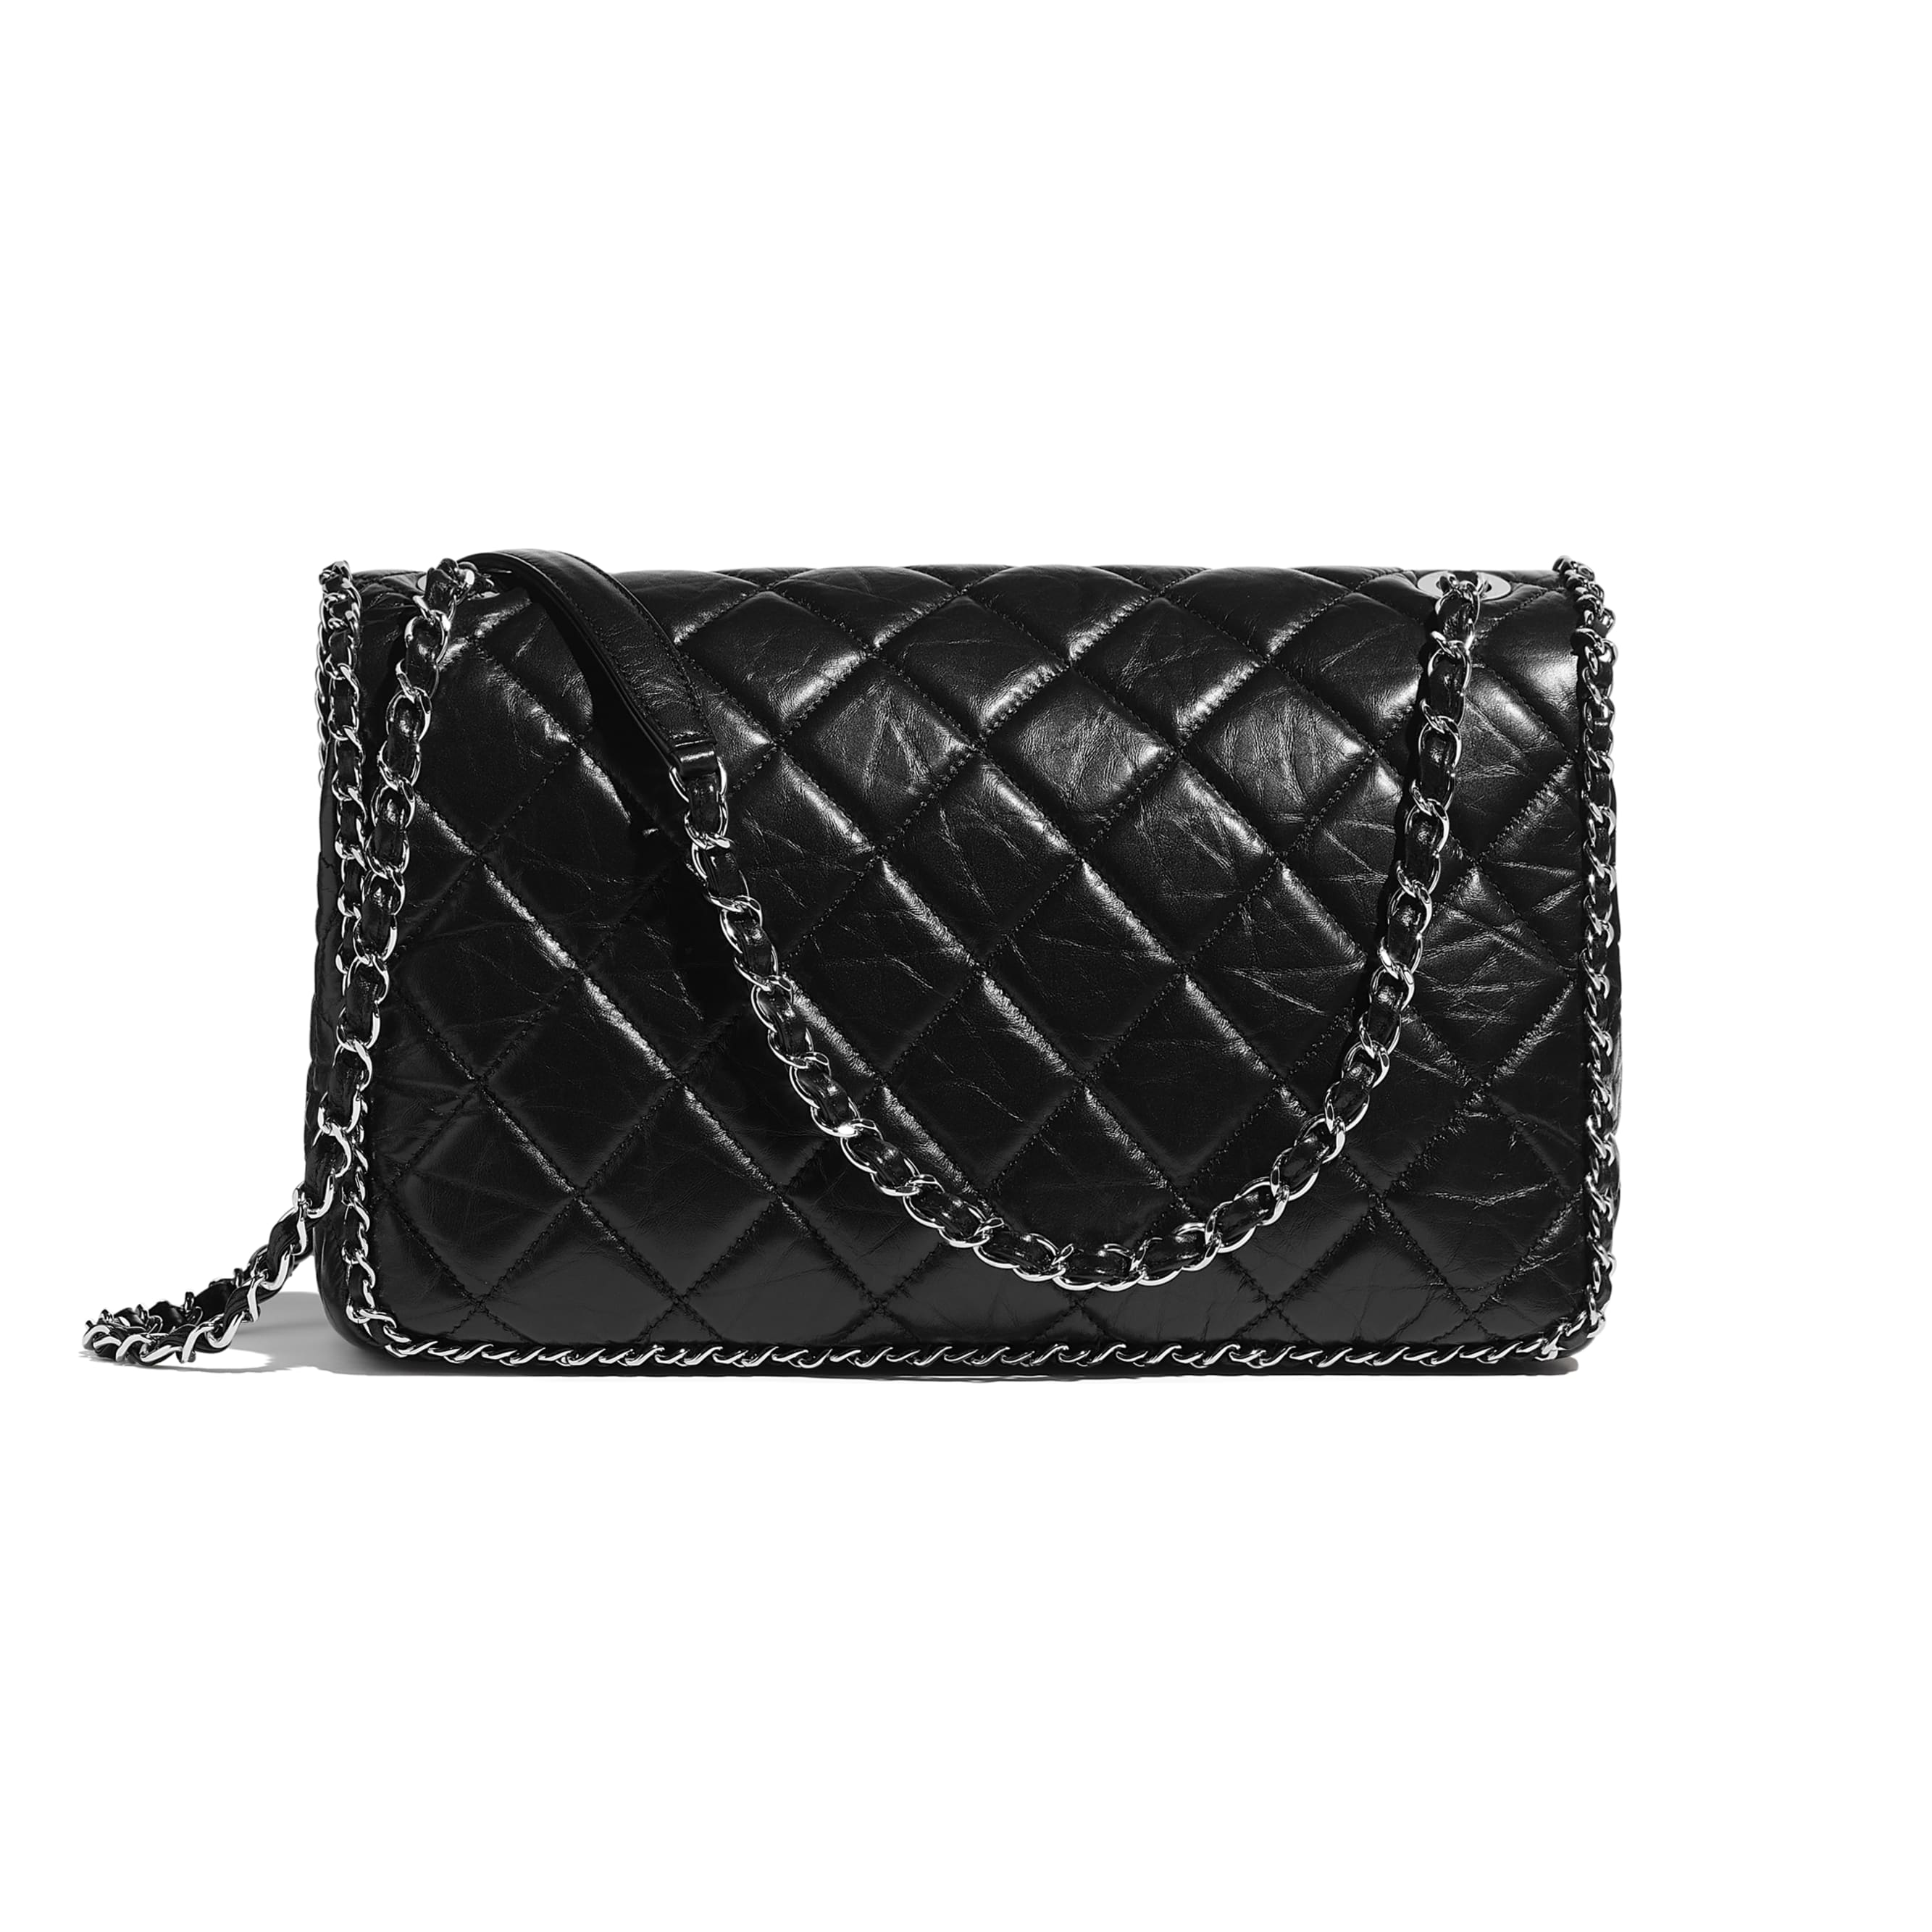 Large Flap Bag - Black - Aged Calfskin & Silver-Tone Metal - CHANEL - Alternative view - see standard sized version